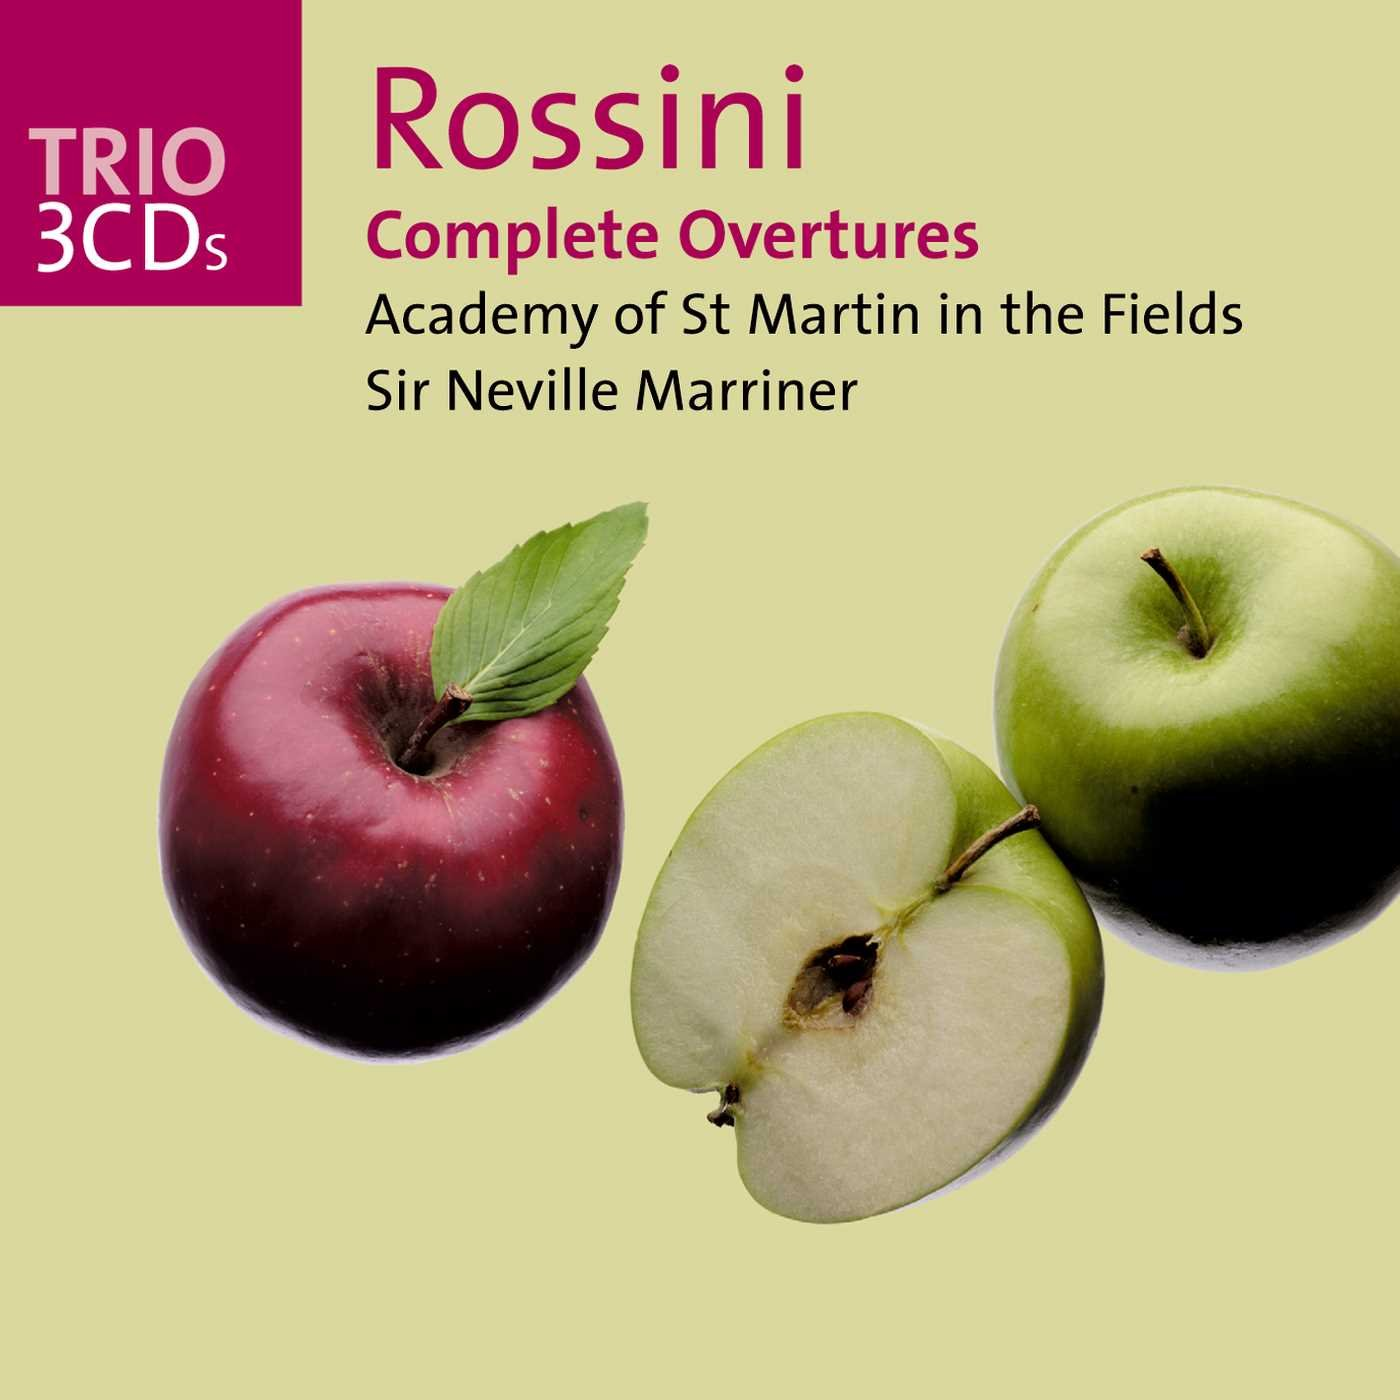 Rossini: Complete Overtures by Philips